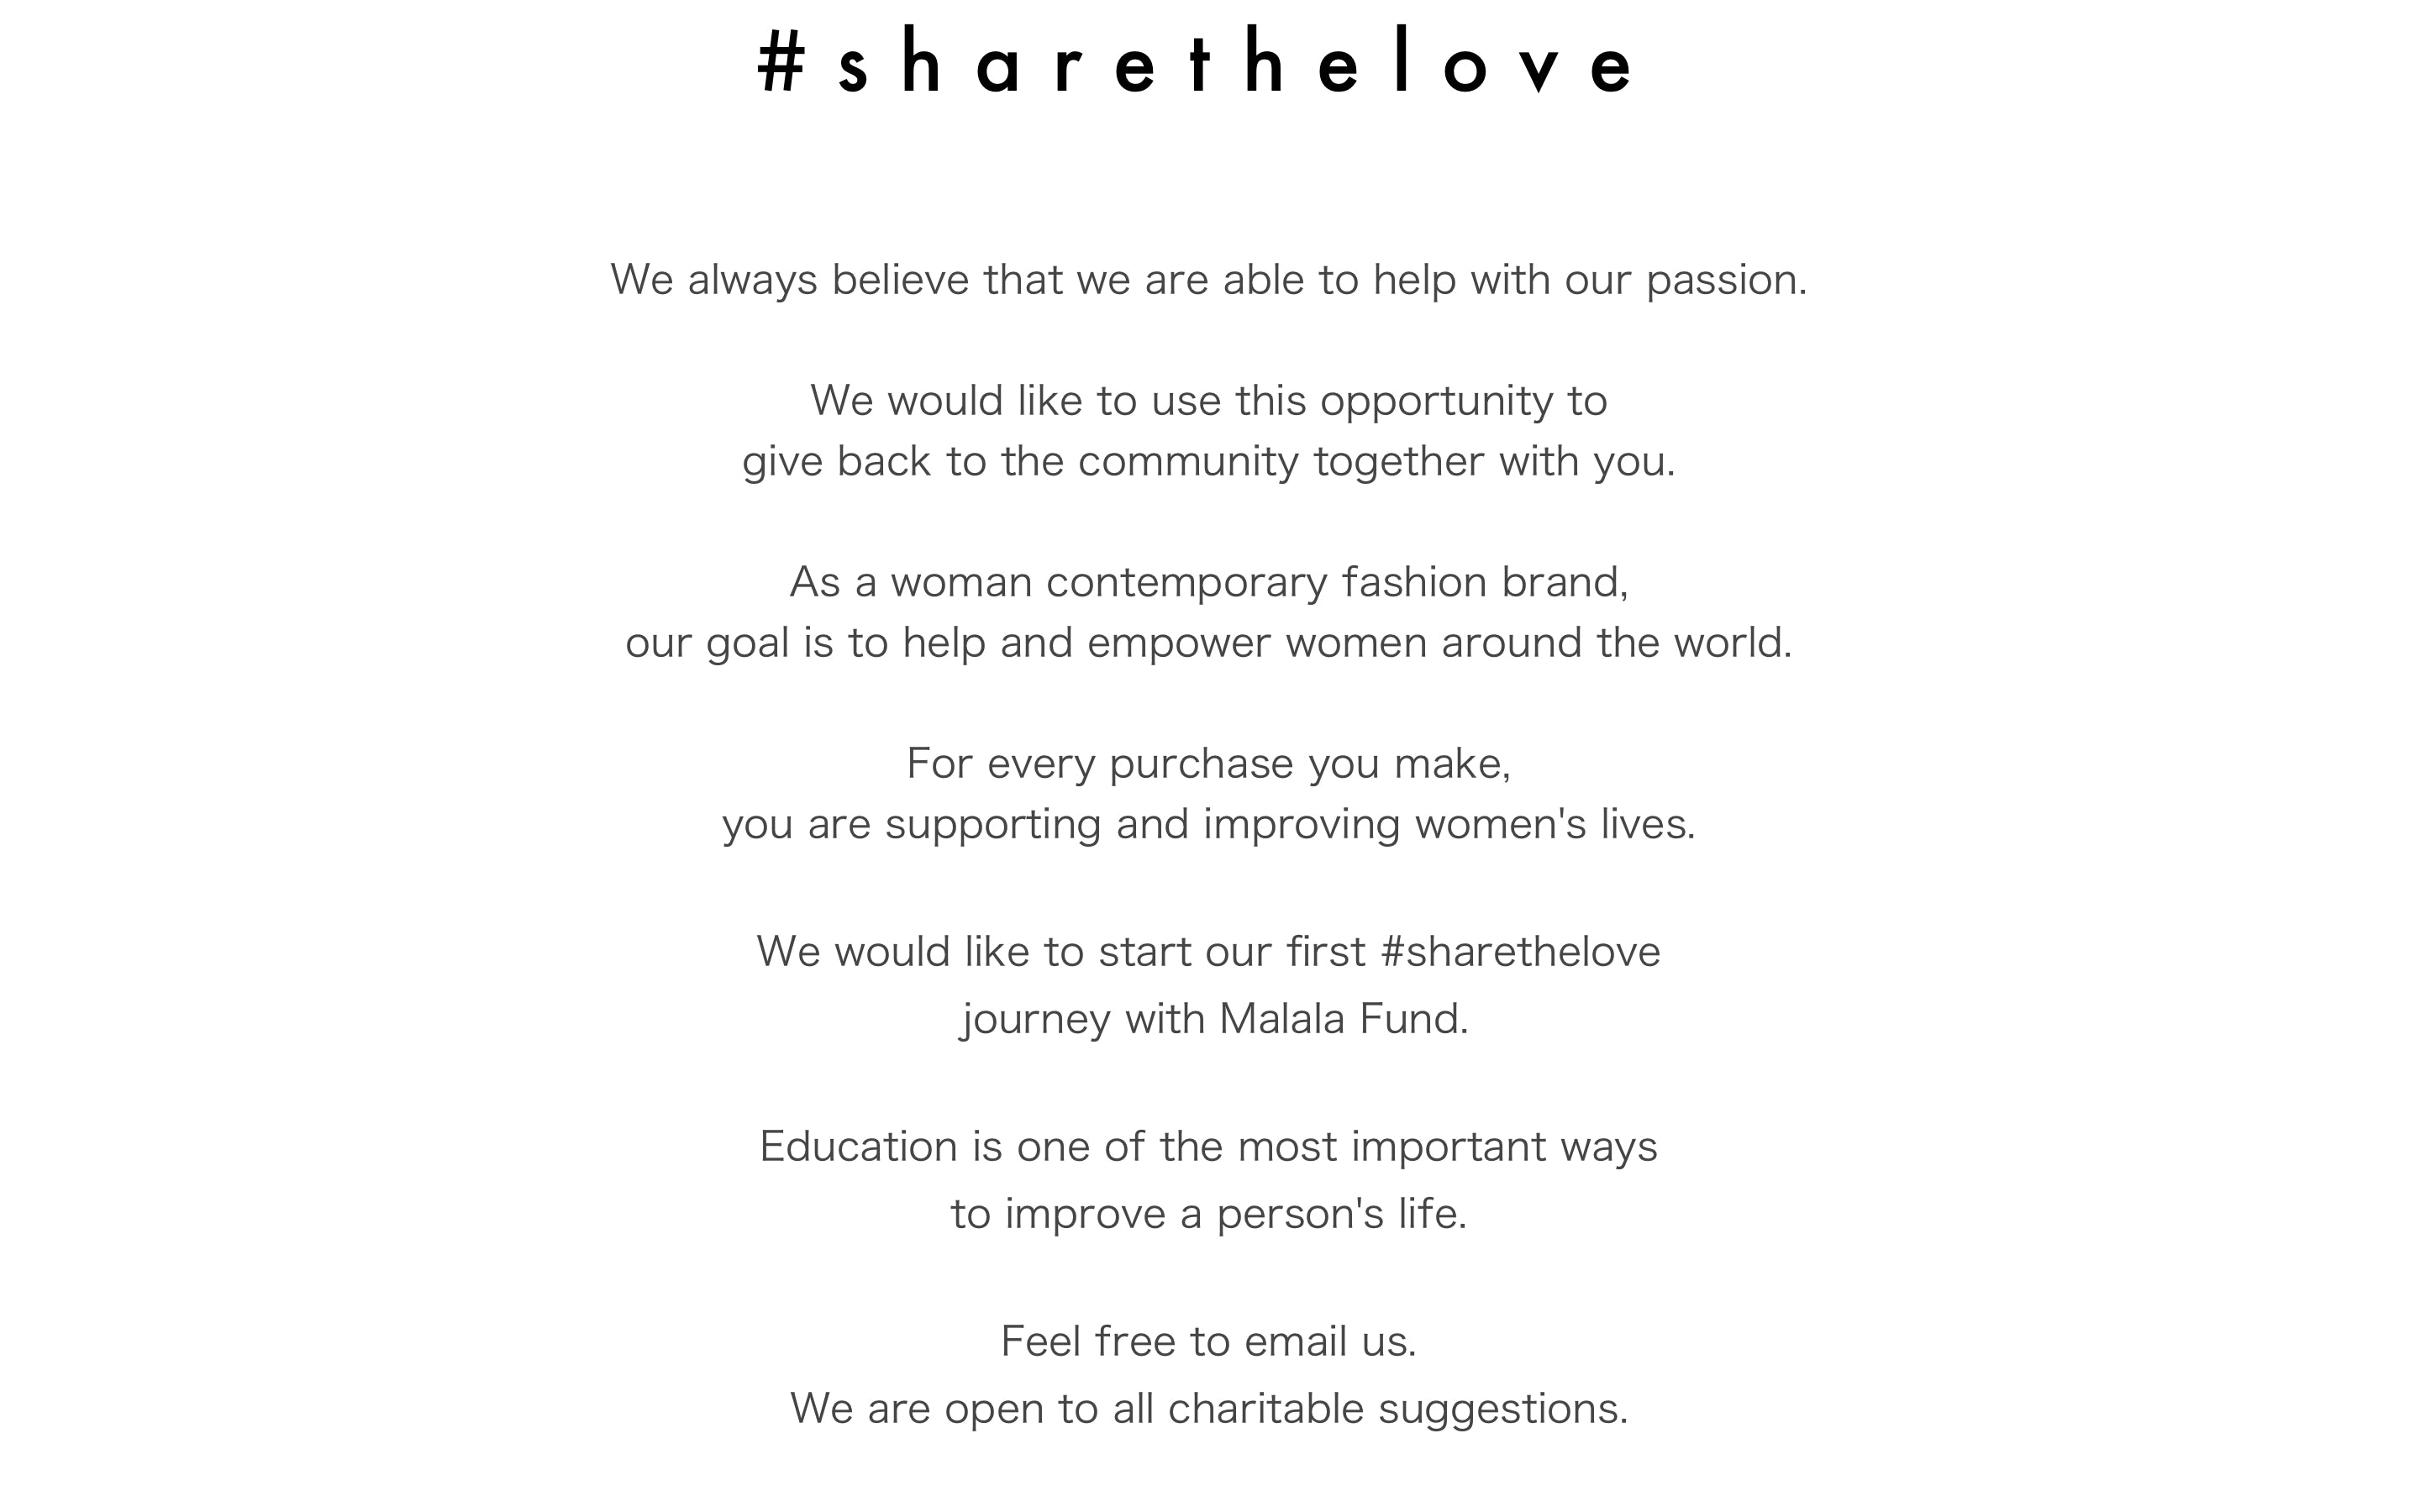 We always believe that we are able to help with our passion.  We would like to use this opportunity to  give back to the community together with you.    As a woman contemporary fashion brand,  our goal is to help and empower women around the world.  For every purchase you make,  you are supporting and improving women's lives.  We would like to start our first #sharethelove   journey with Malala Fund.    Education is one of the most important ways   to improve a person's life.   Feel free to email us. We are open to all charitable suggestions.